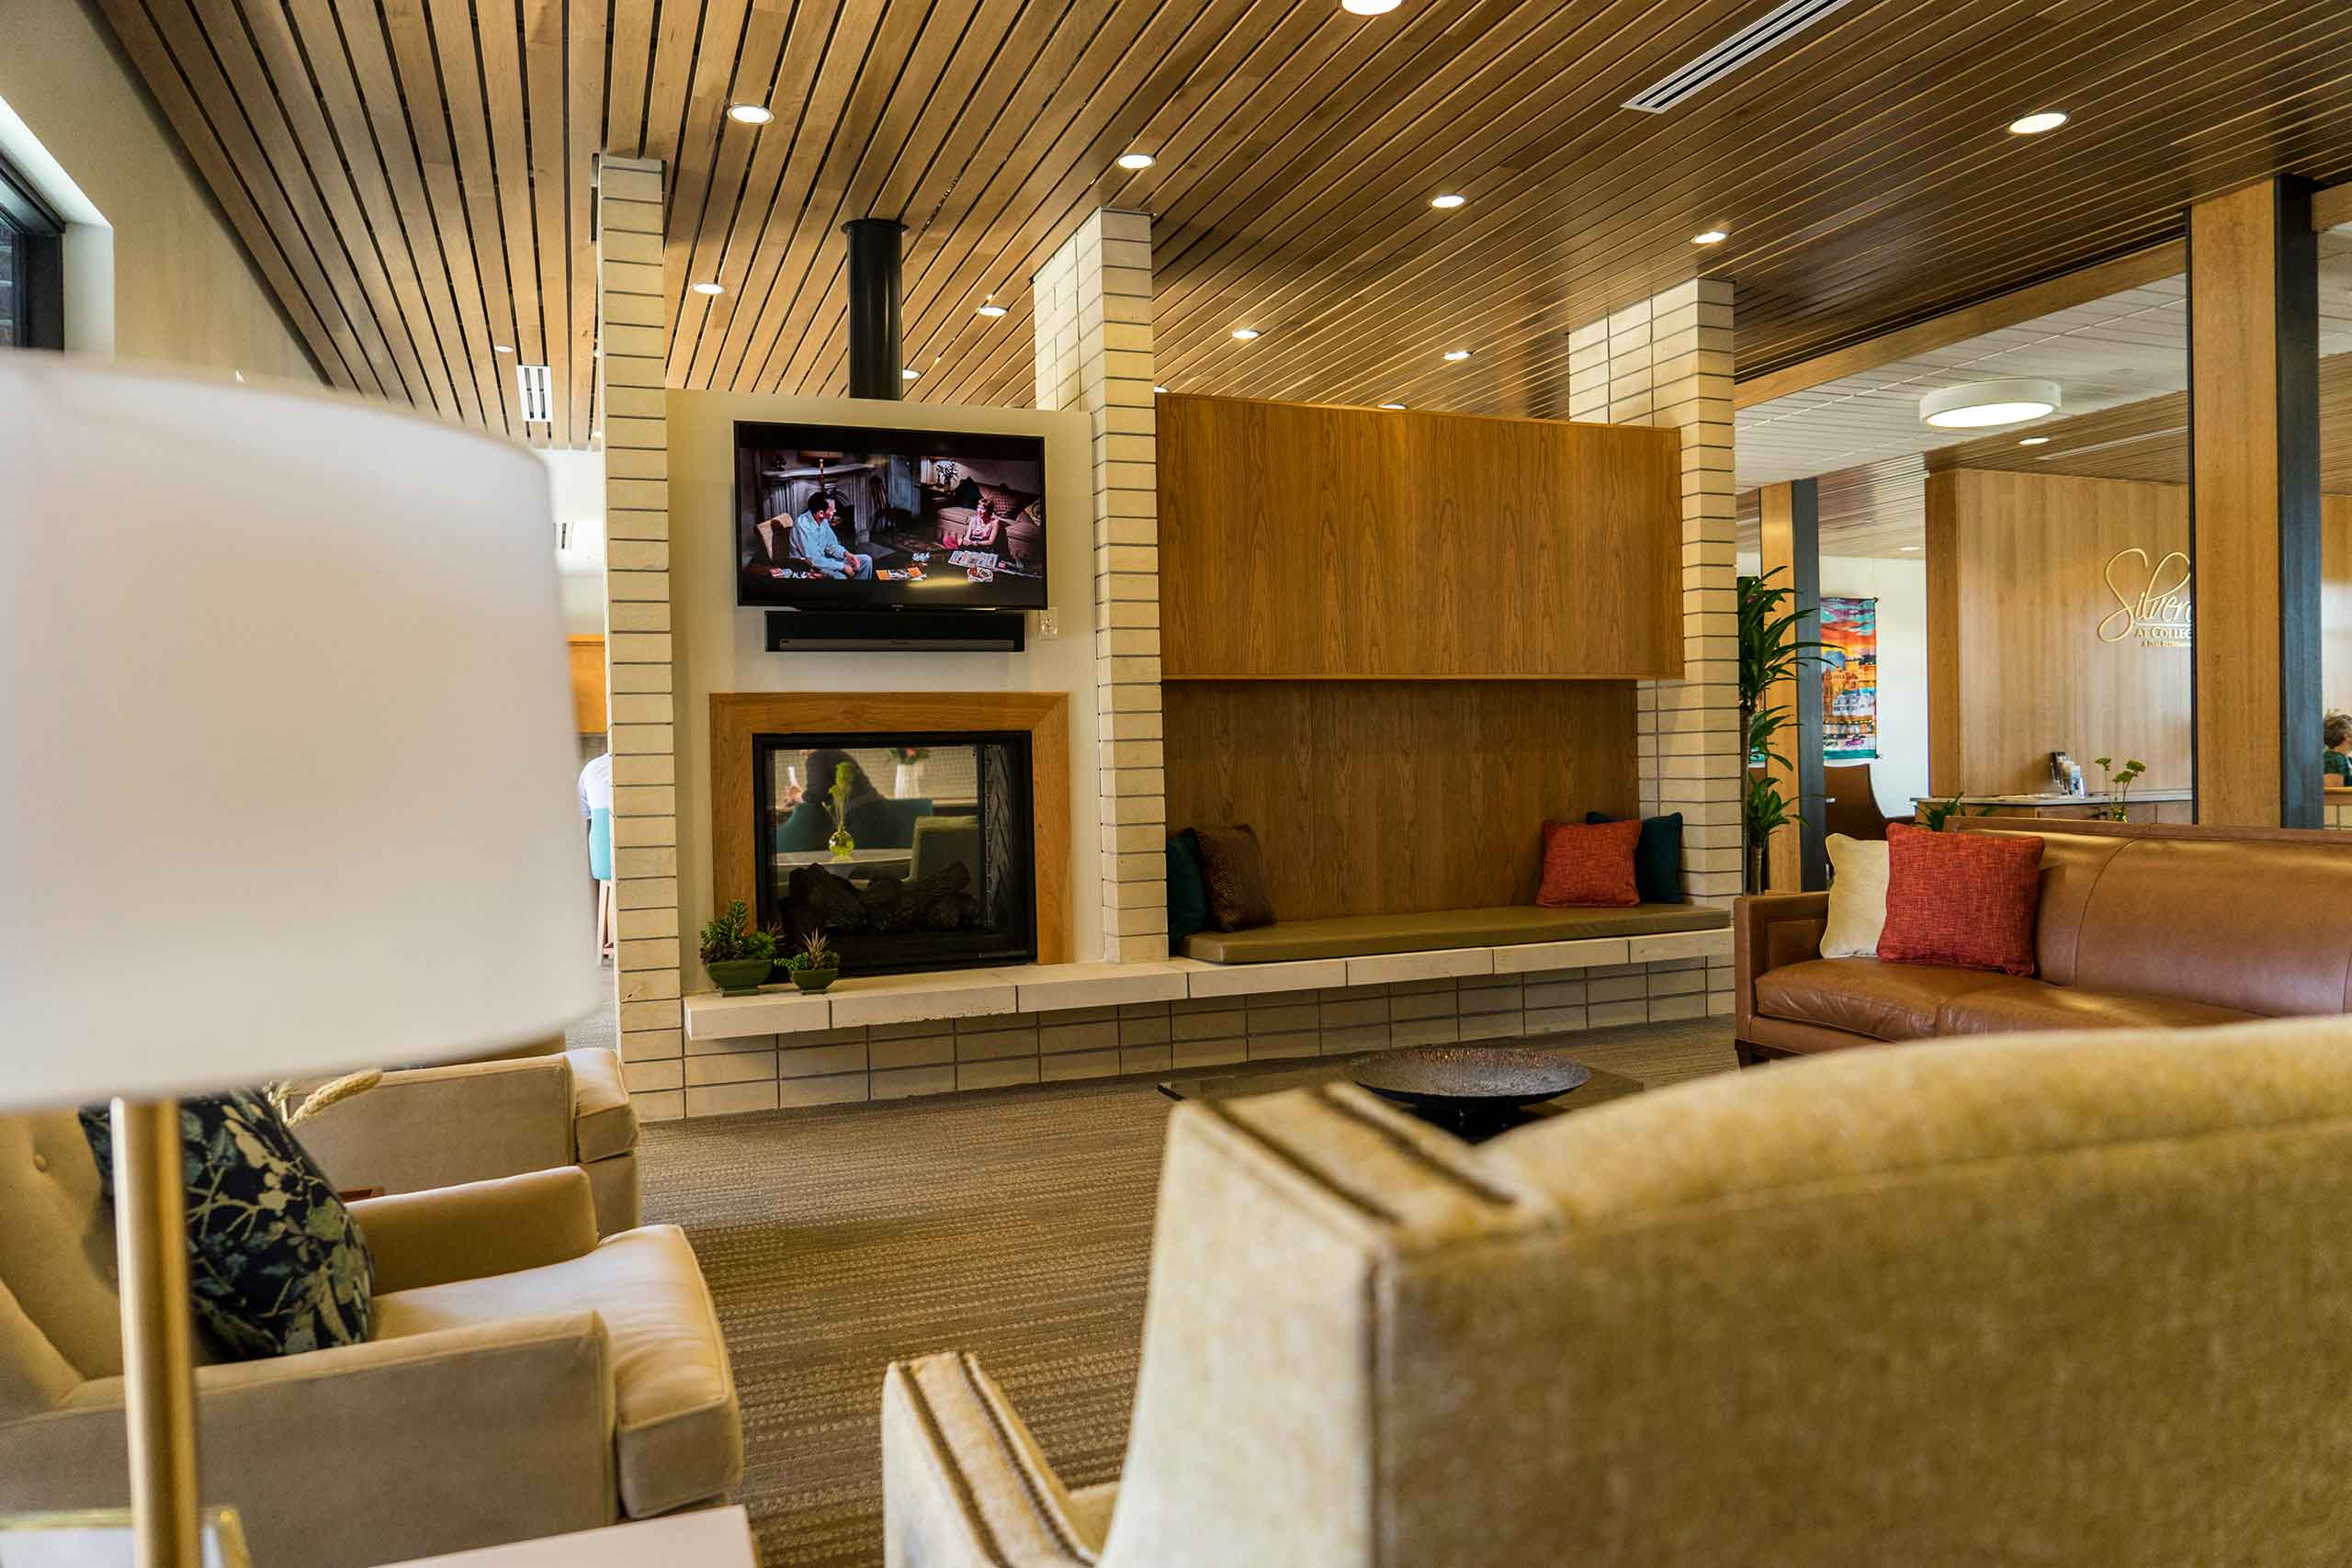 Silvercrest-at-College-View-Assisted-Living-Common-Area